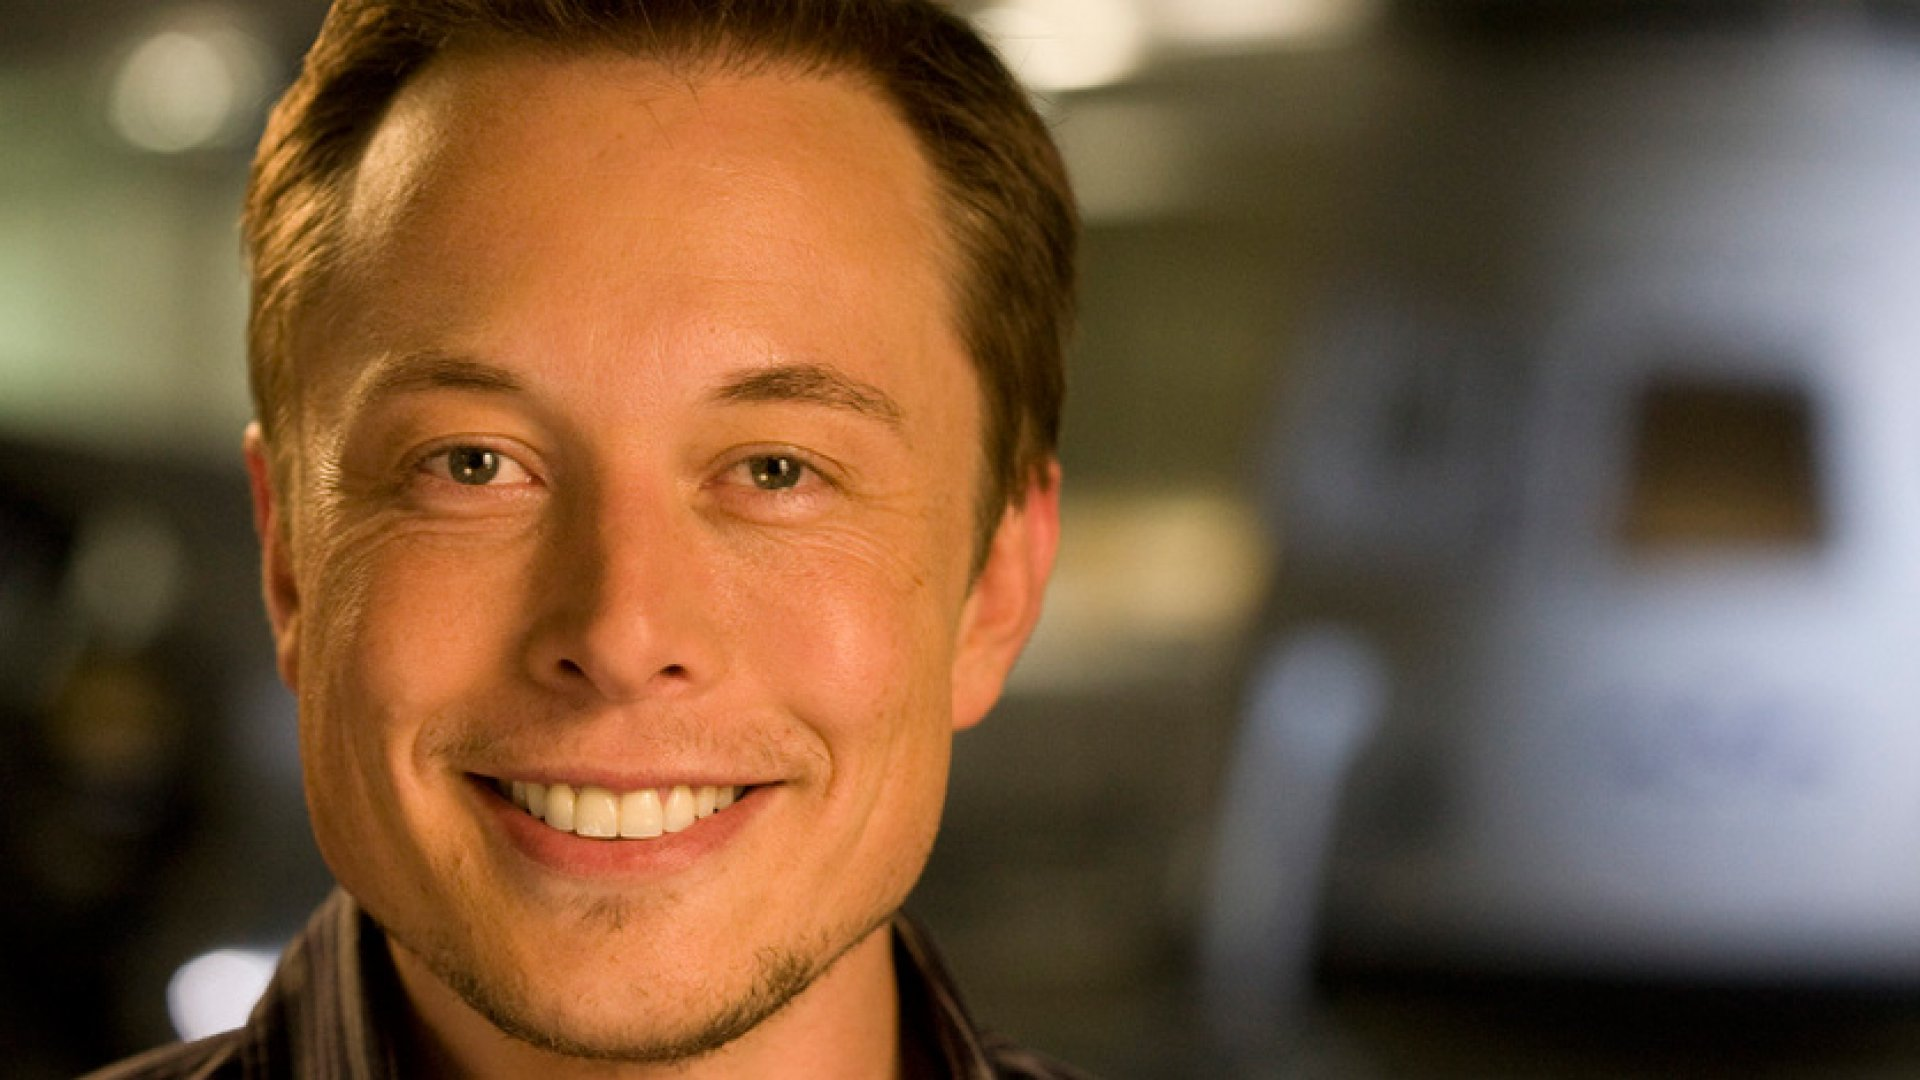 The Real Reason Elon Musk Became an Entrepreneur